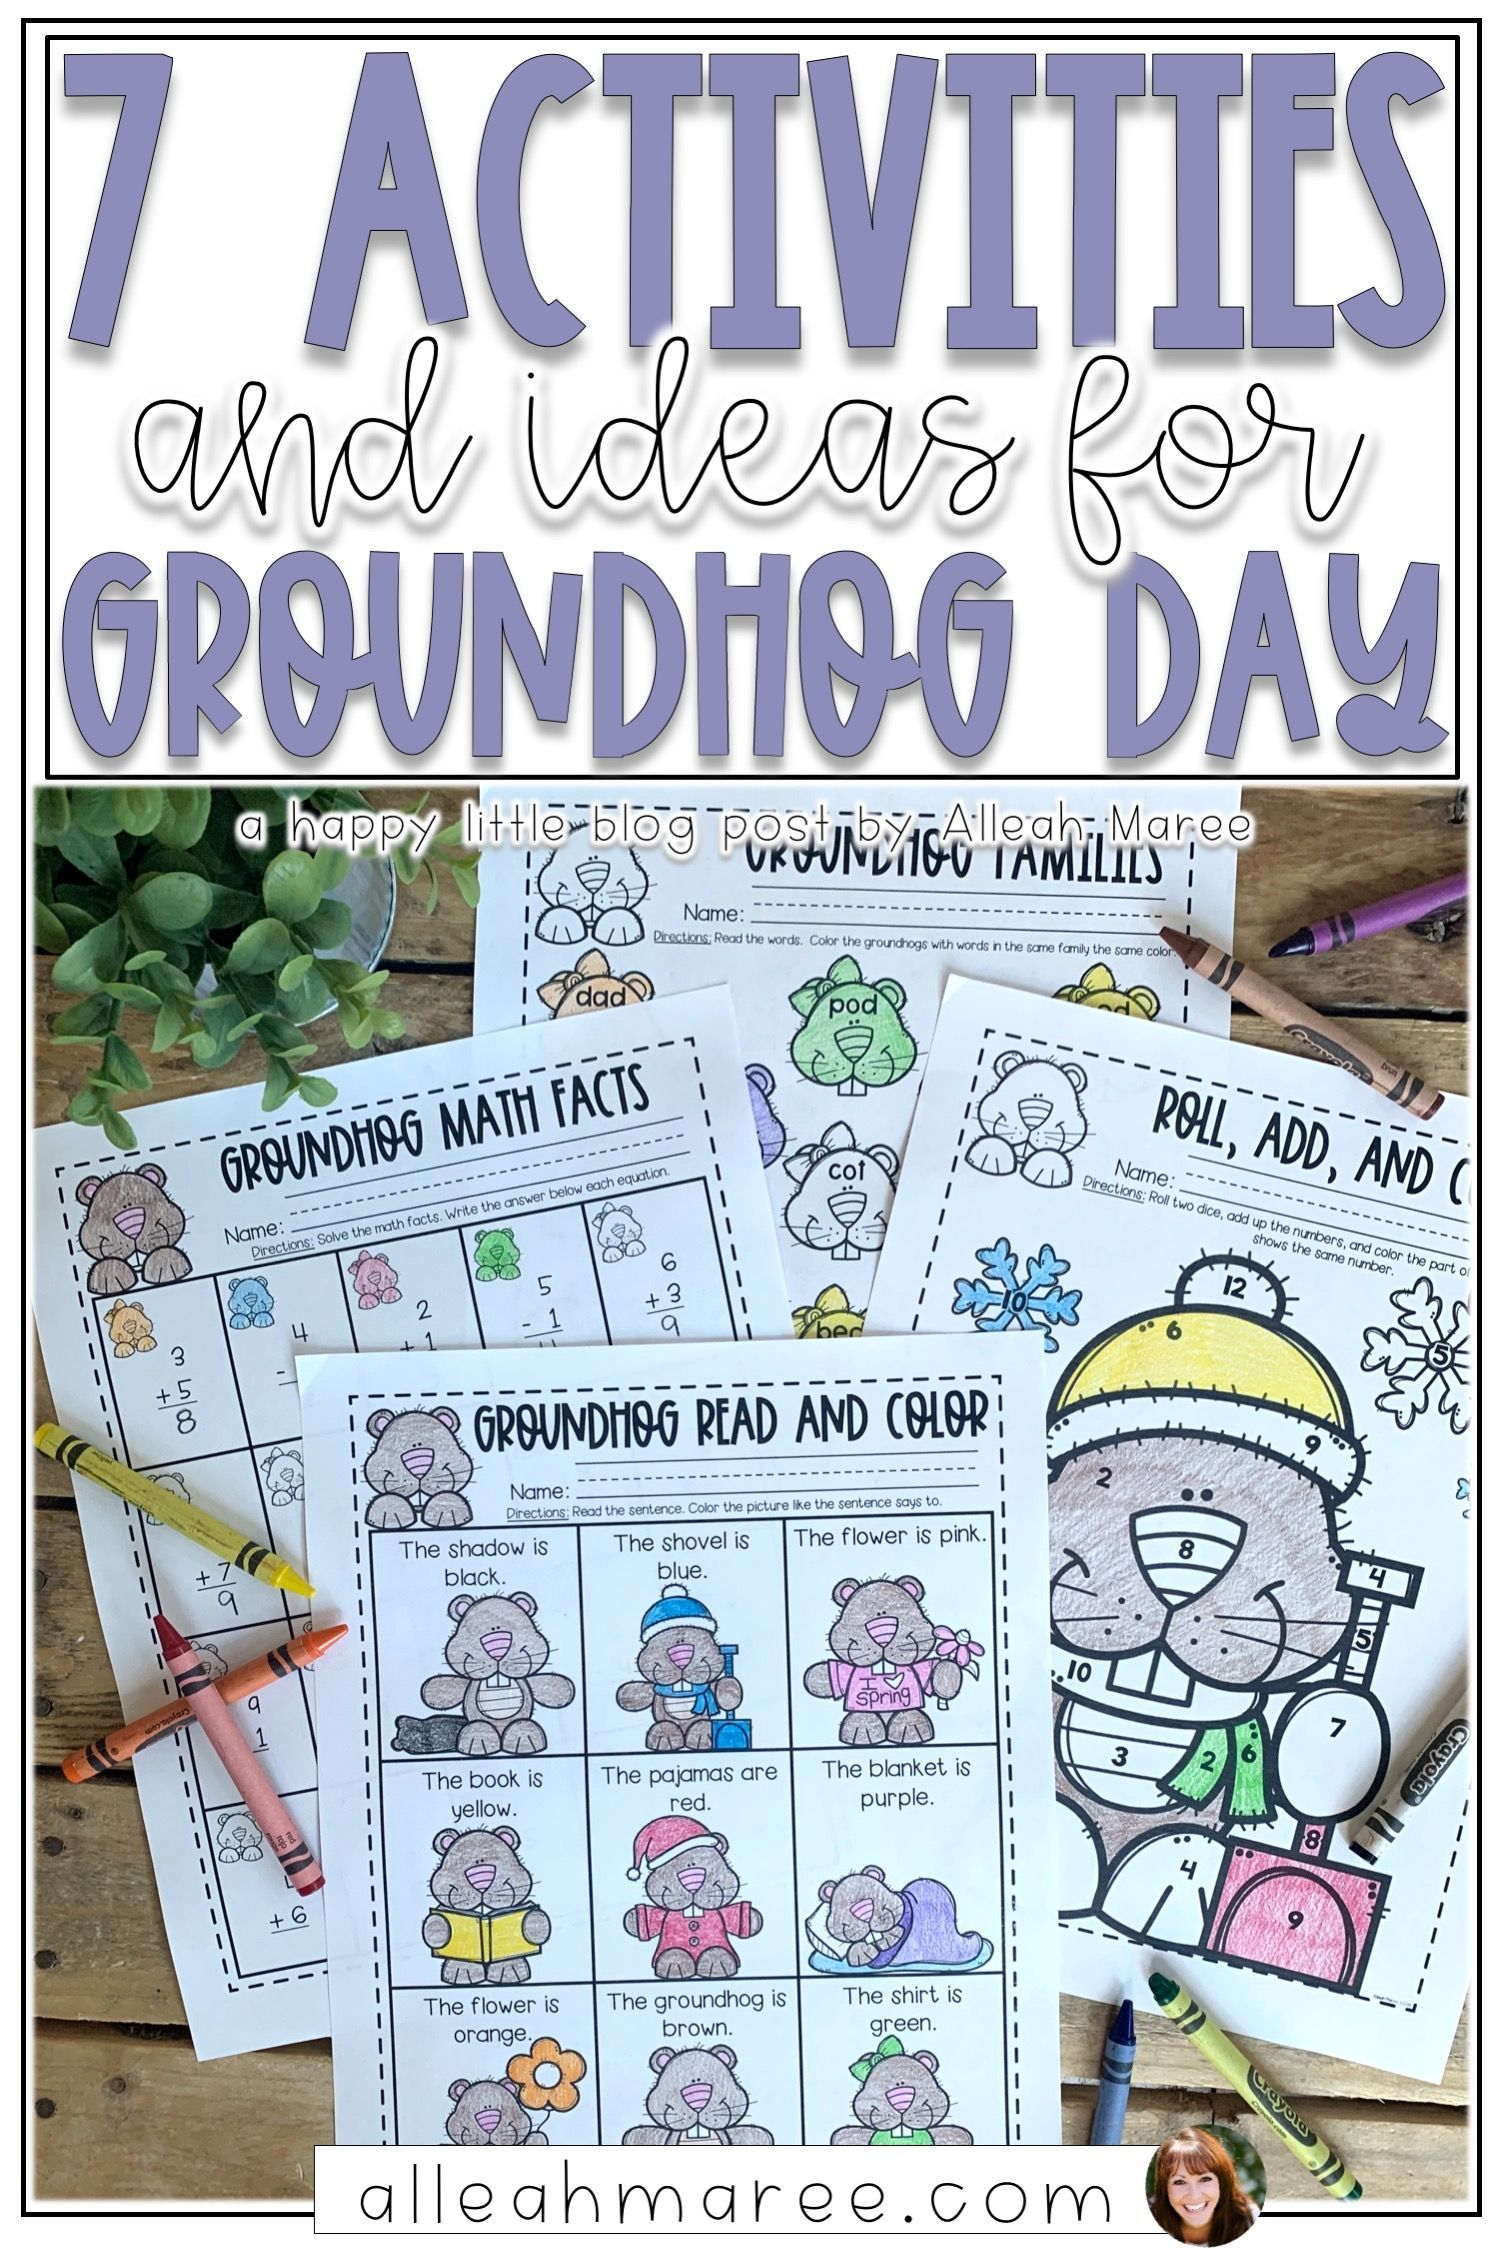 7 Easy Groundhog Day Ideas And Activities For Little